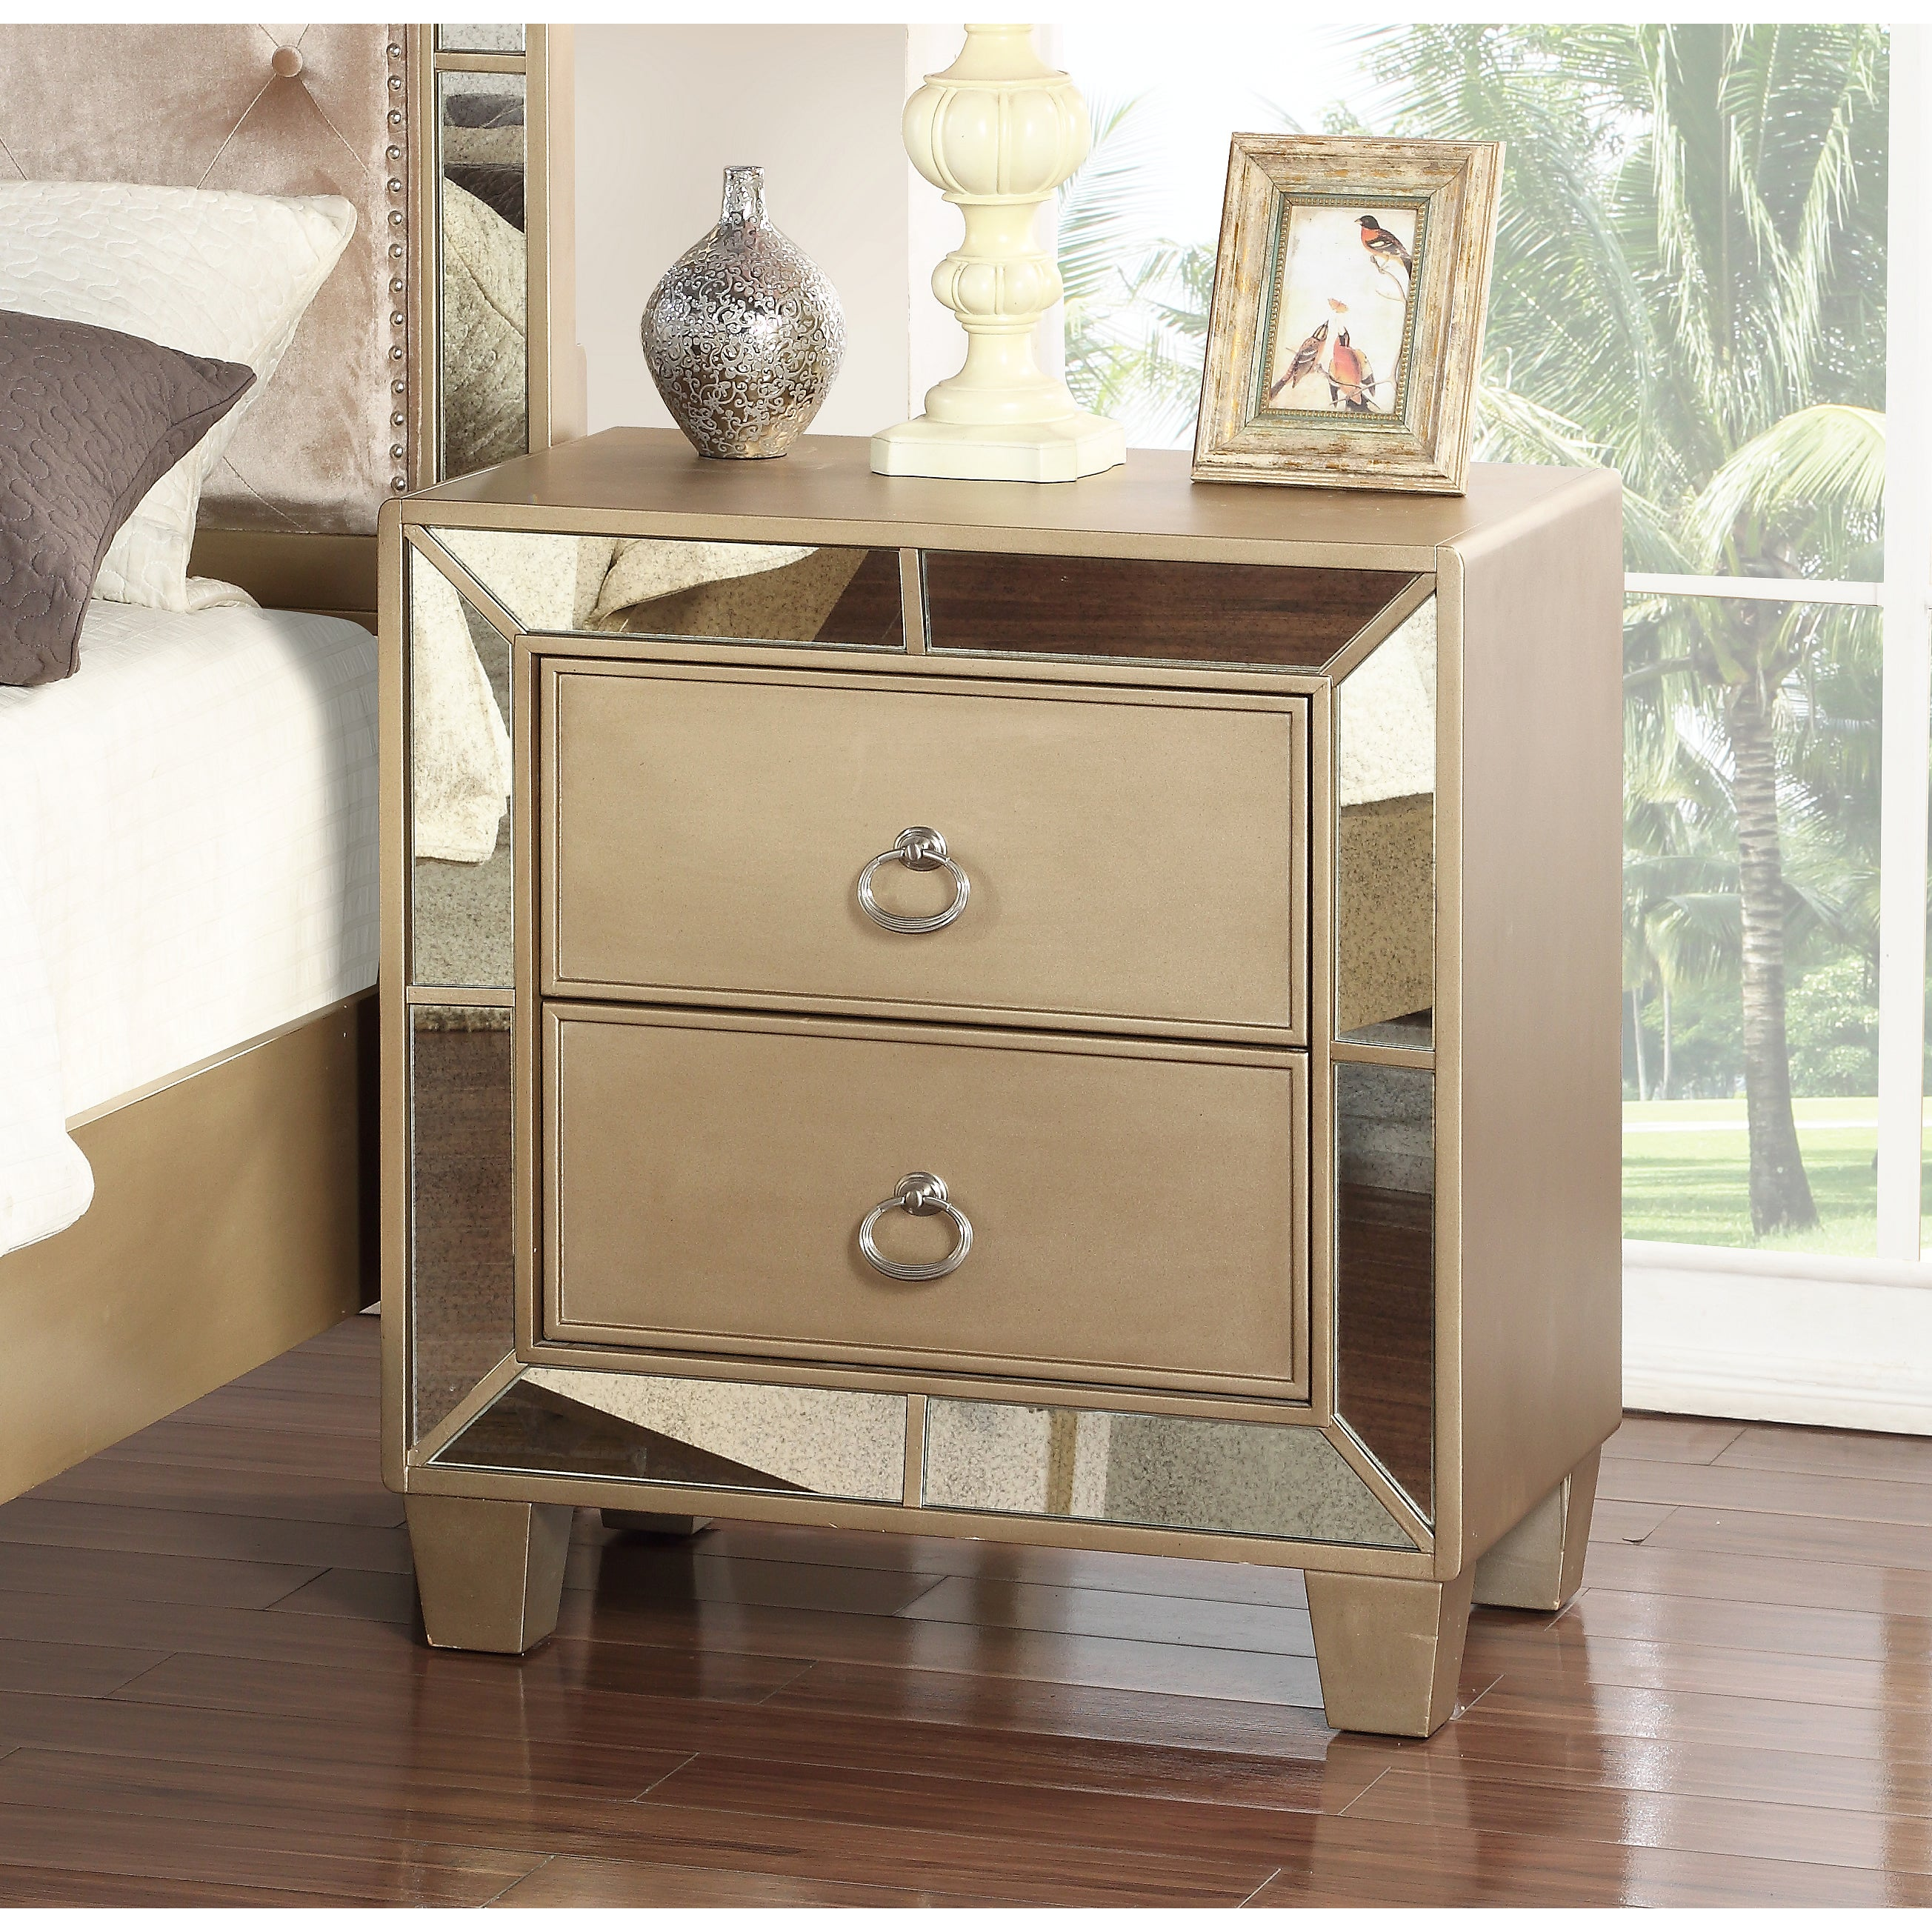 Abbyson Chateau Goldtone Wood Mirrored 2 Drawer Nightstand